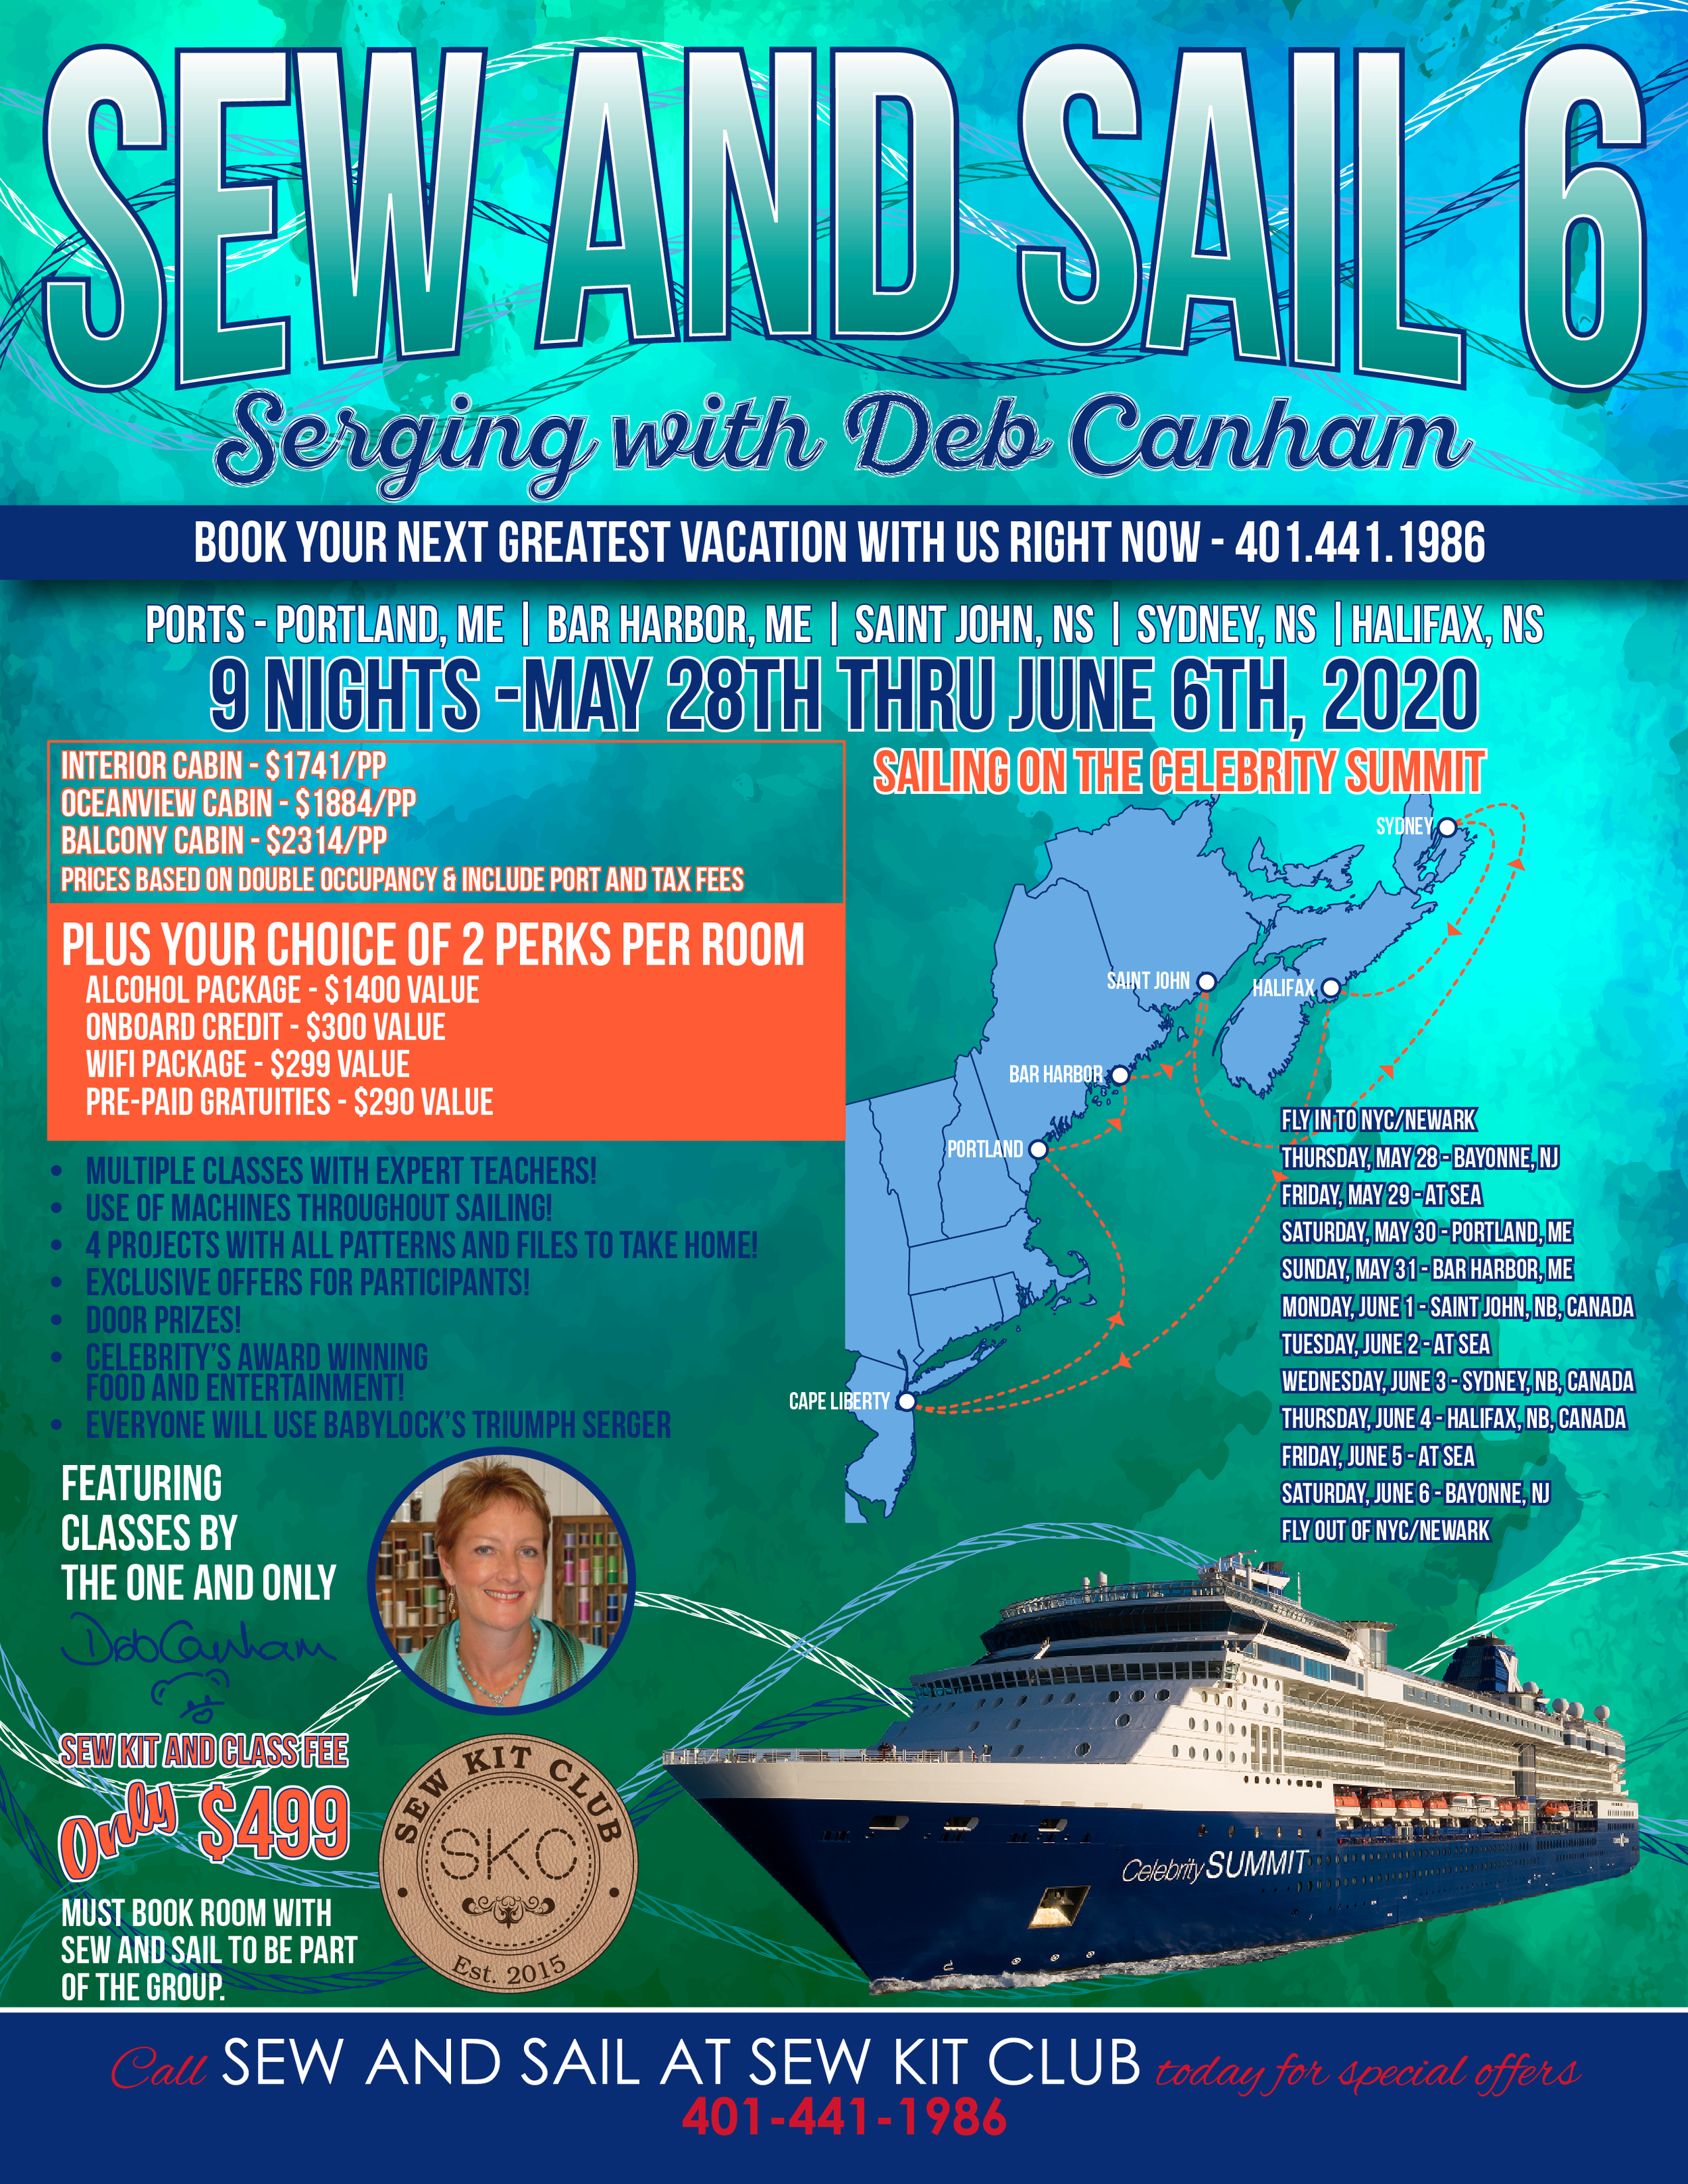 sew and sail 6 flyer 2.png